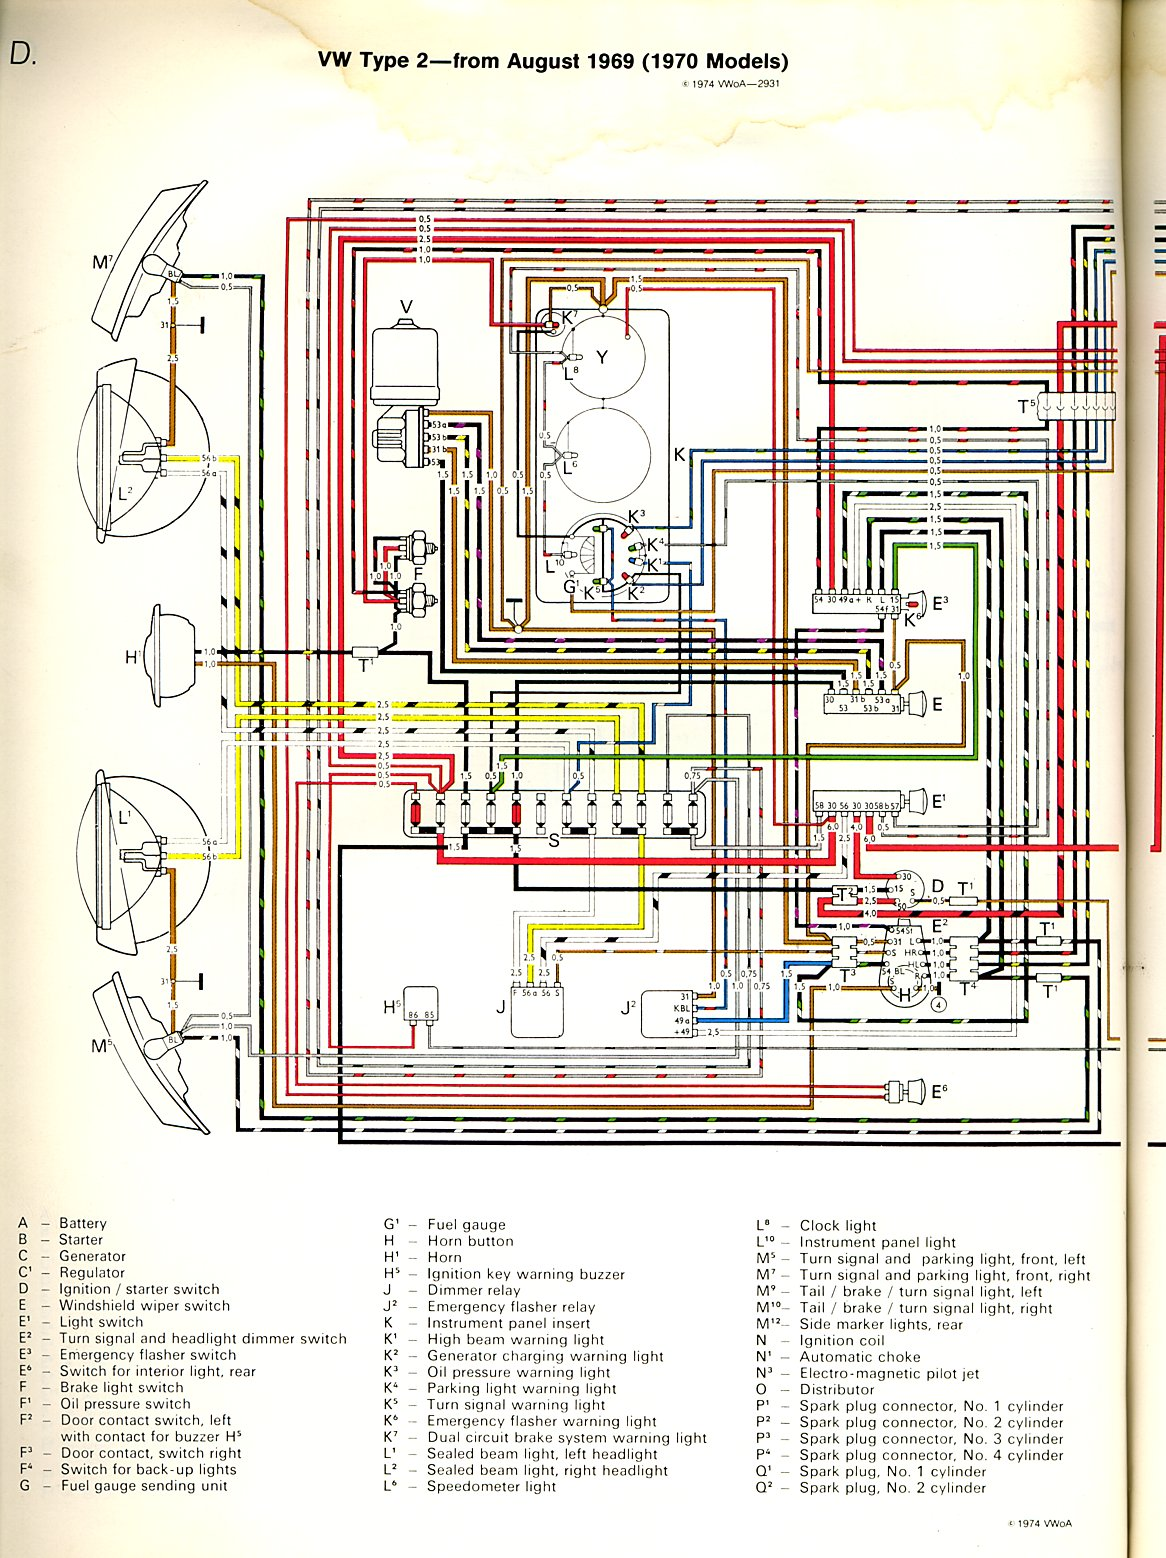 1977 vw bus wiring diagram wiring diagram data schemathesamba com type 2 wiring diagrams 1977 vw bus wiring diagram 1977 vw bus wiring diagram